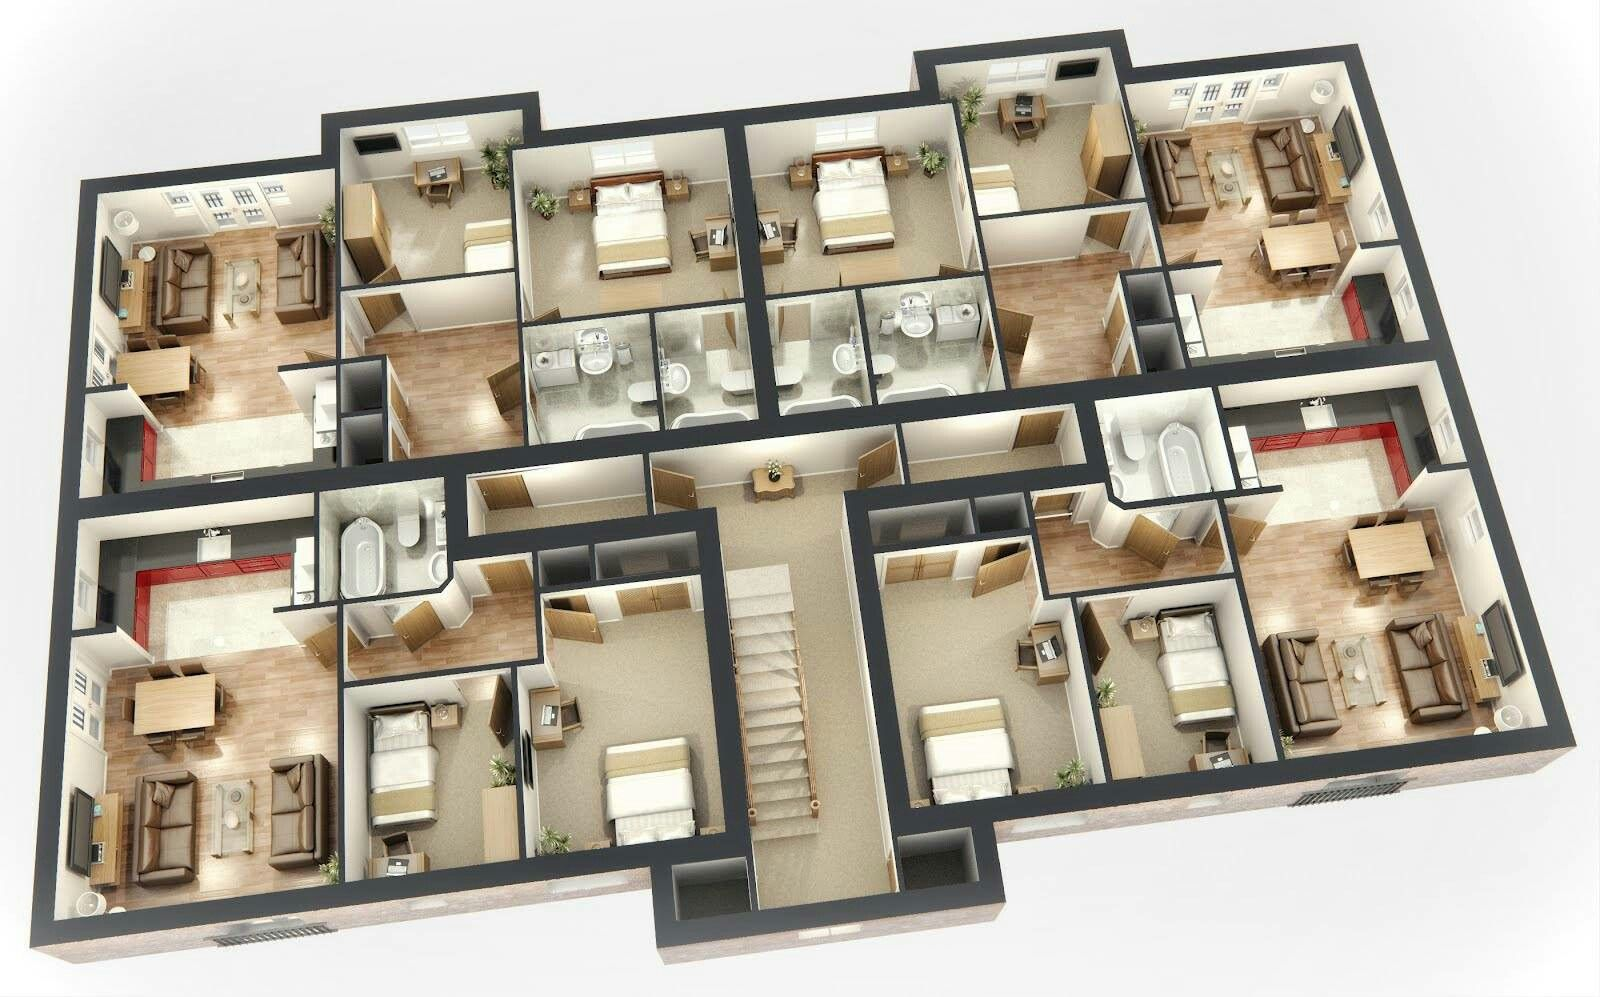 Pin By Djoa Dowski On Top View Inside House Small Apartment House Plans 3d House Plans House Blueprints